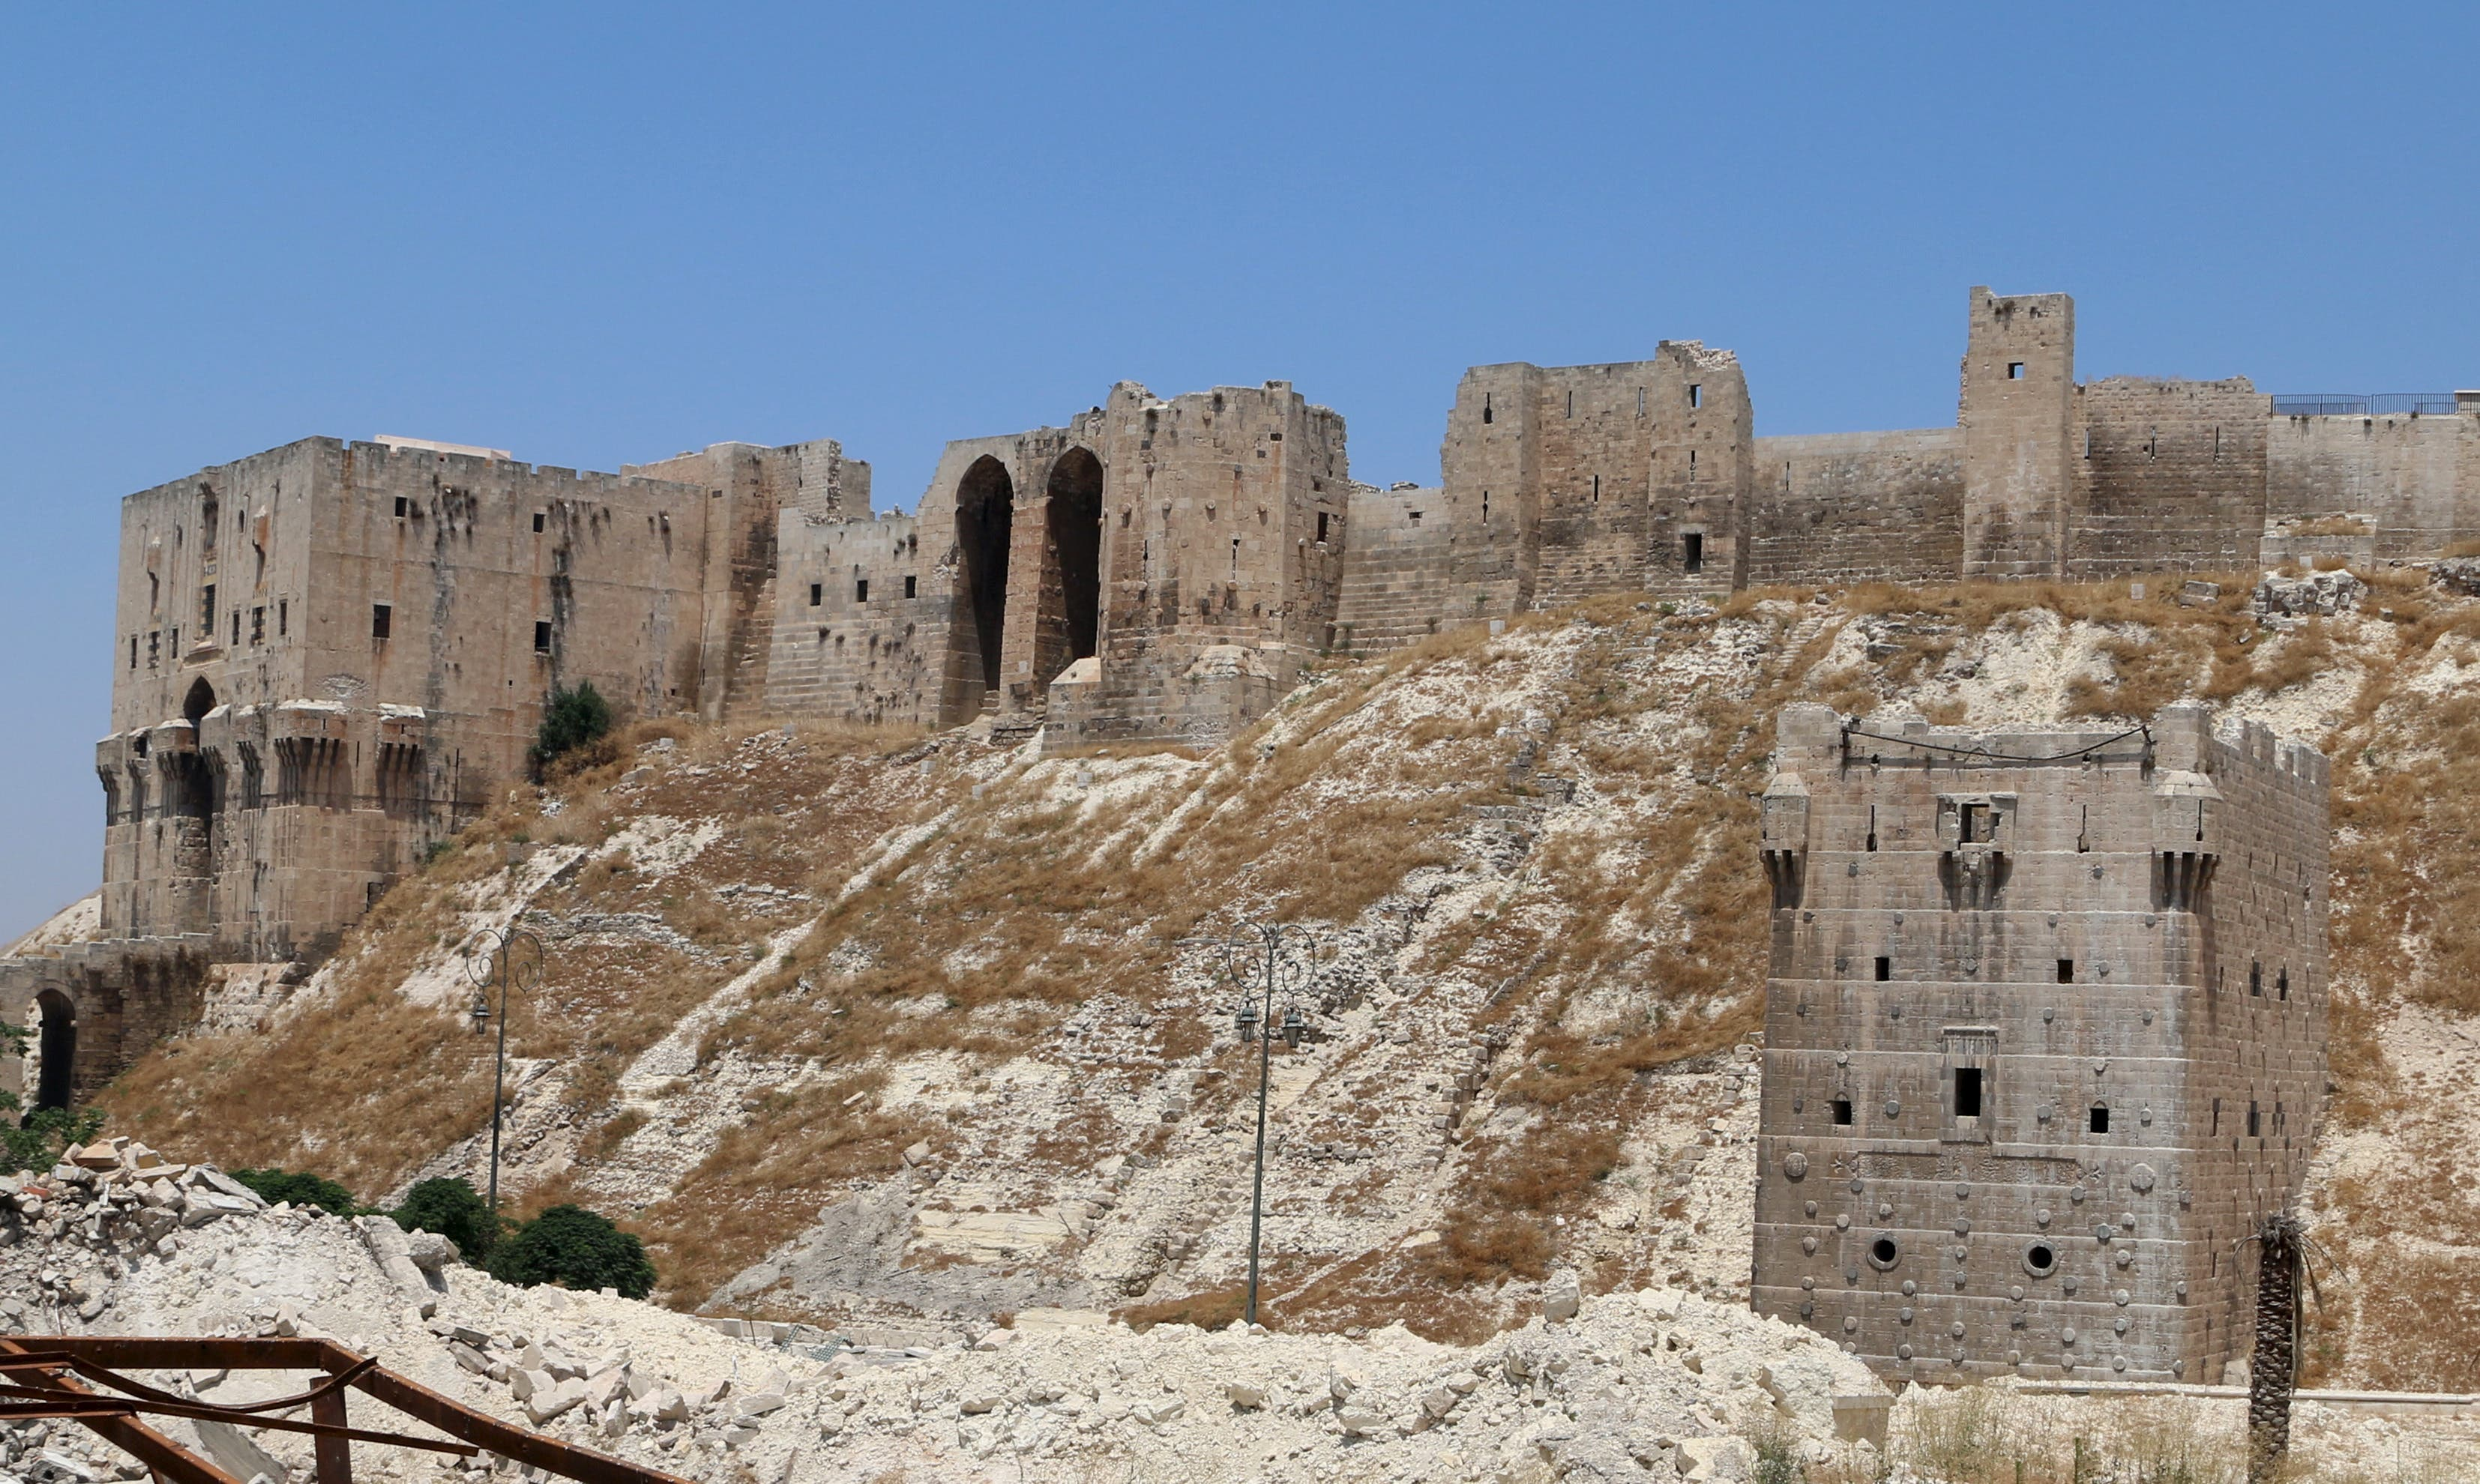 Antiquities under threat in Syria and Iraq